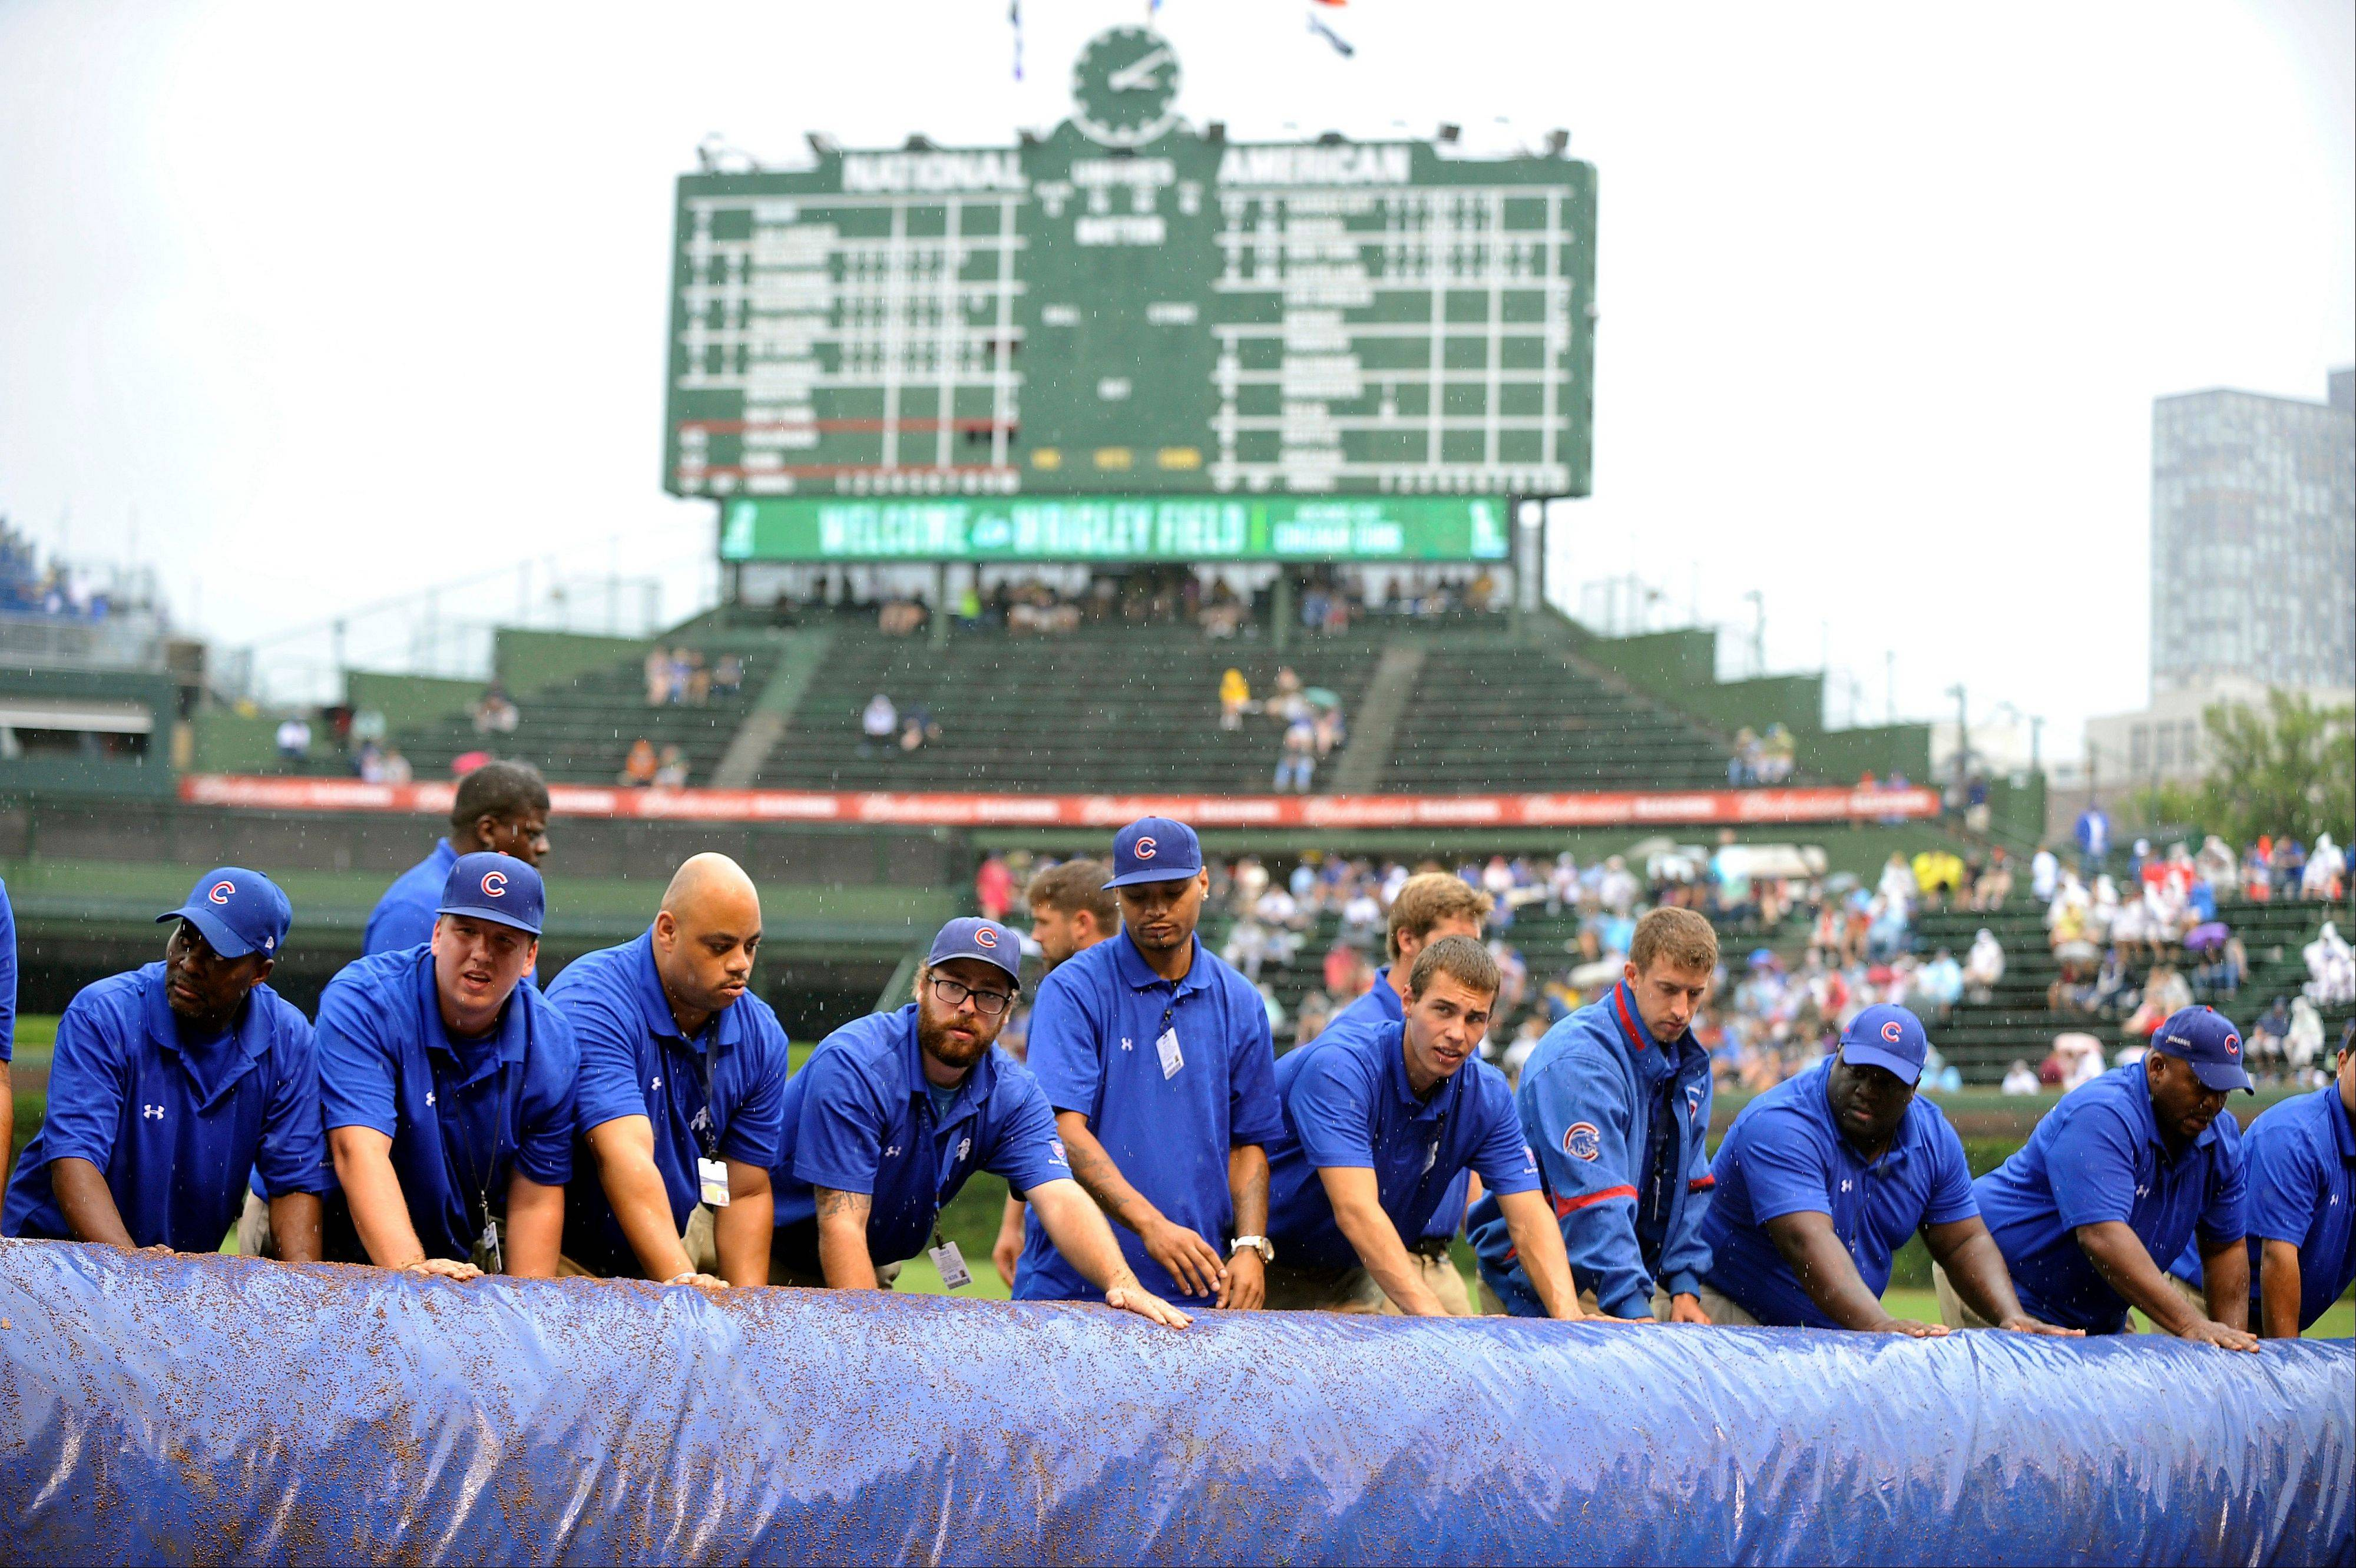 Grounds crew members take the tarp off the infield Sunday after a rain delay at Wrigley Field.